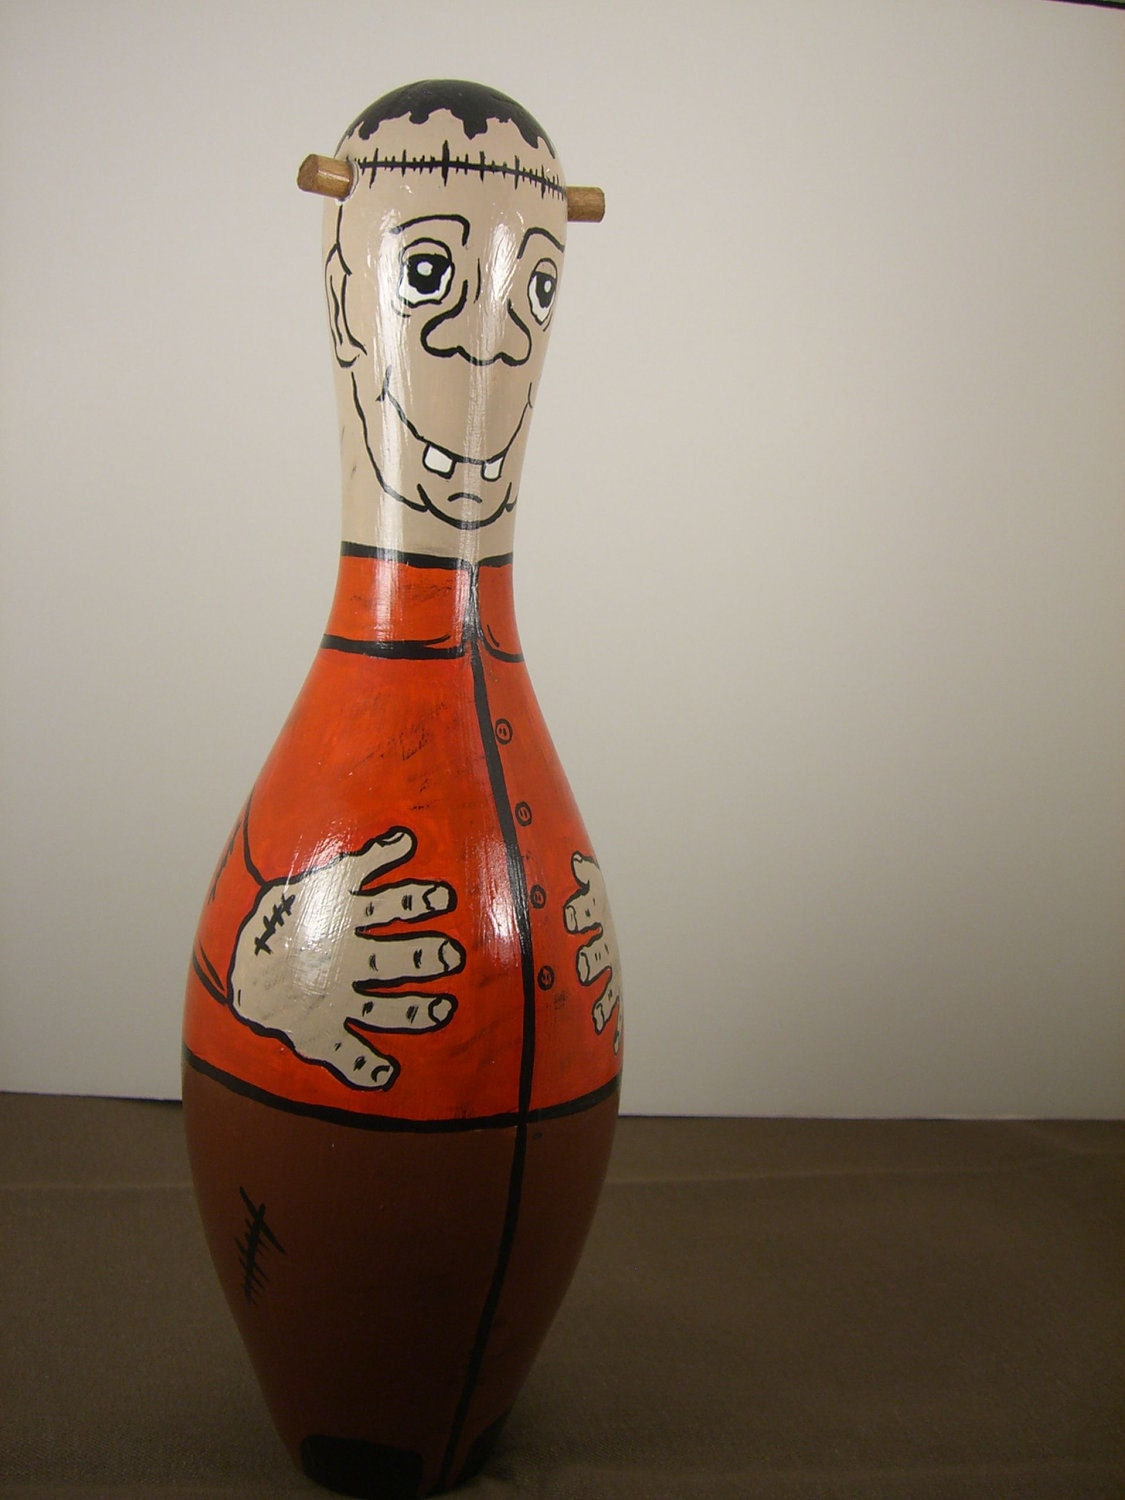 Pin By Dani Daemon On Boys And Girls: Frankenstein Bowling Pin By Erwindoodads On Etsy